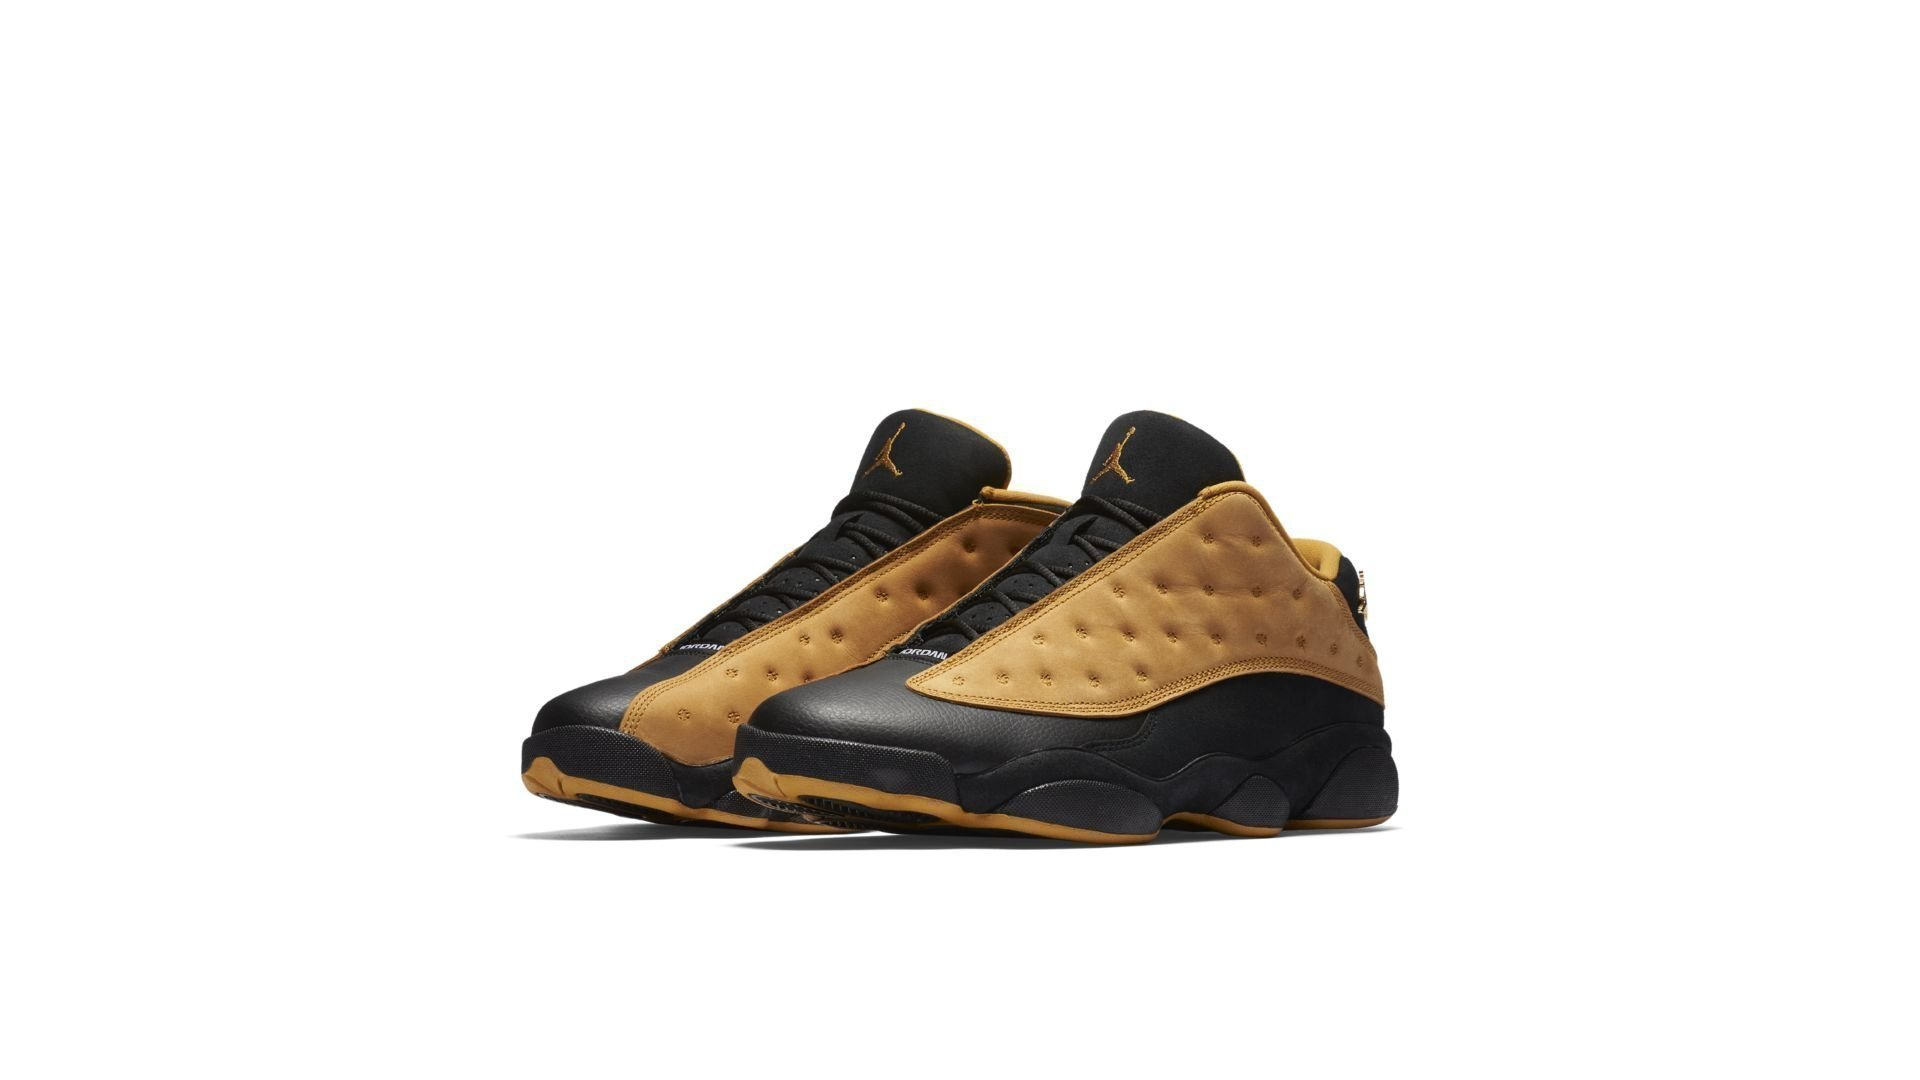 Air Jordan XIII Retro Low Chutney (310810-022)